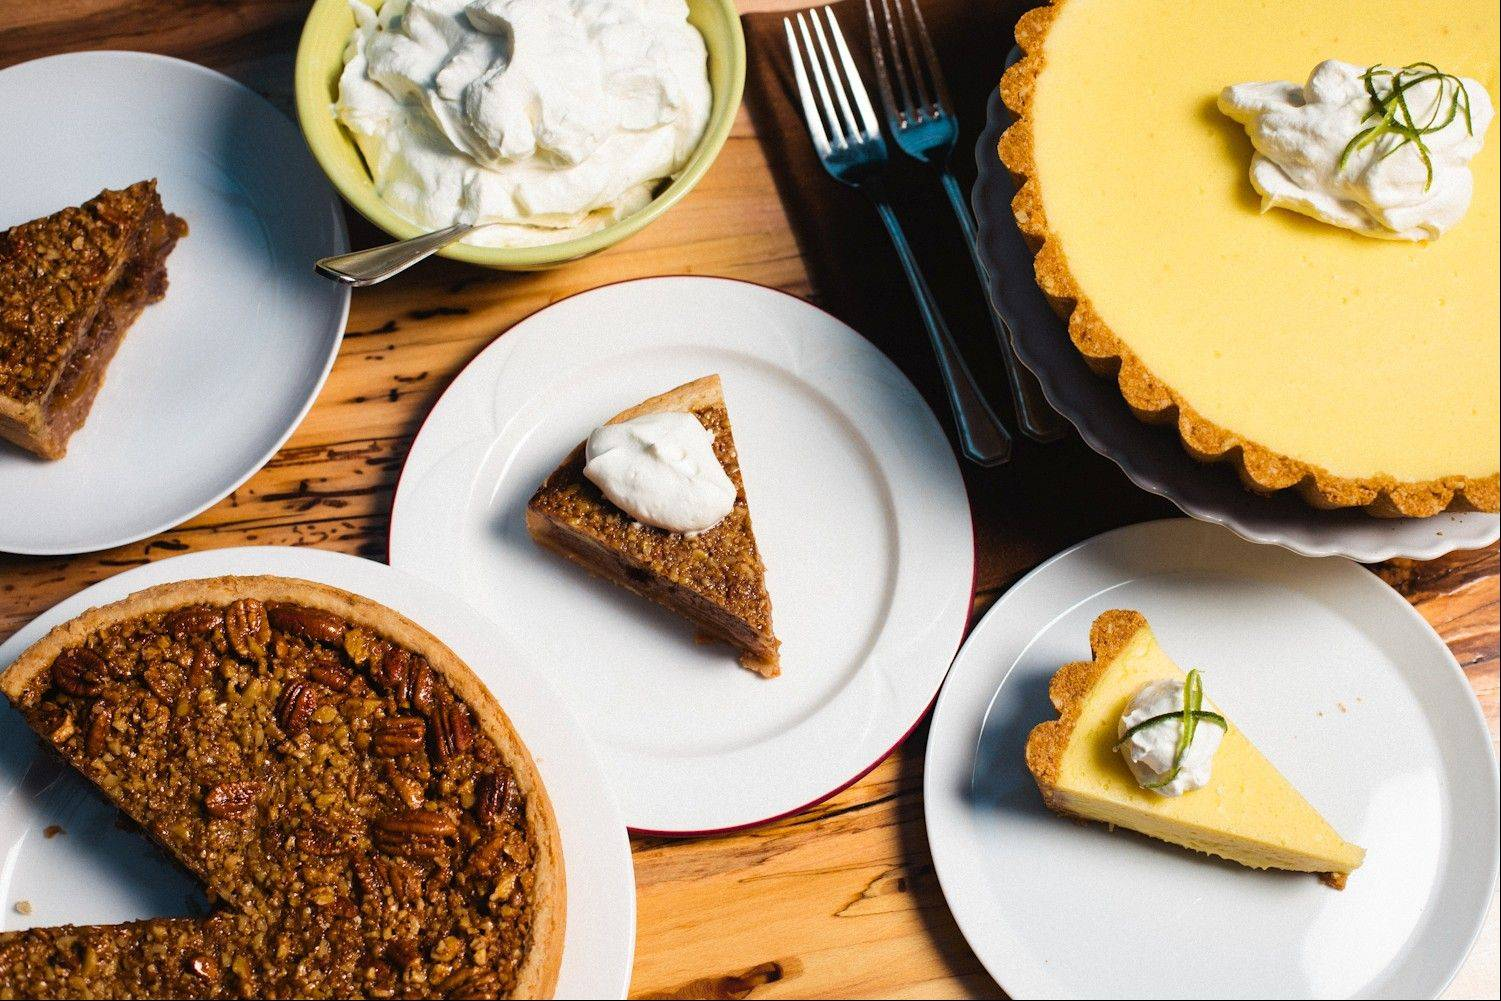 Shaw's Crab House features a variety of pies for dessert in its Chicago Restaurant Week menu.